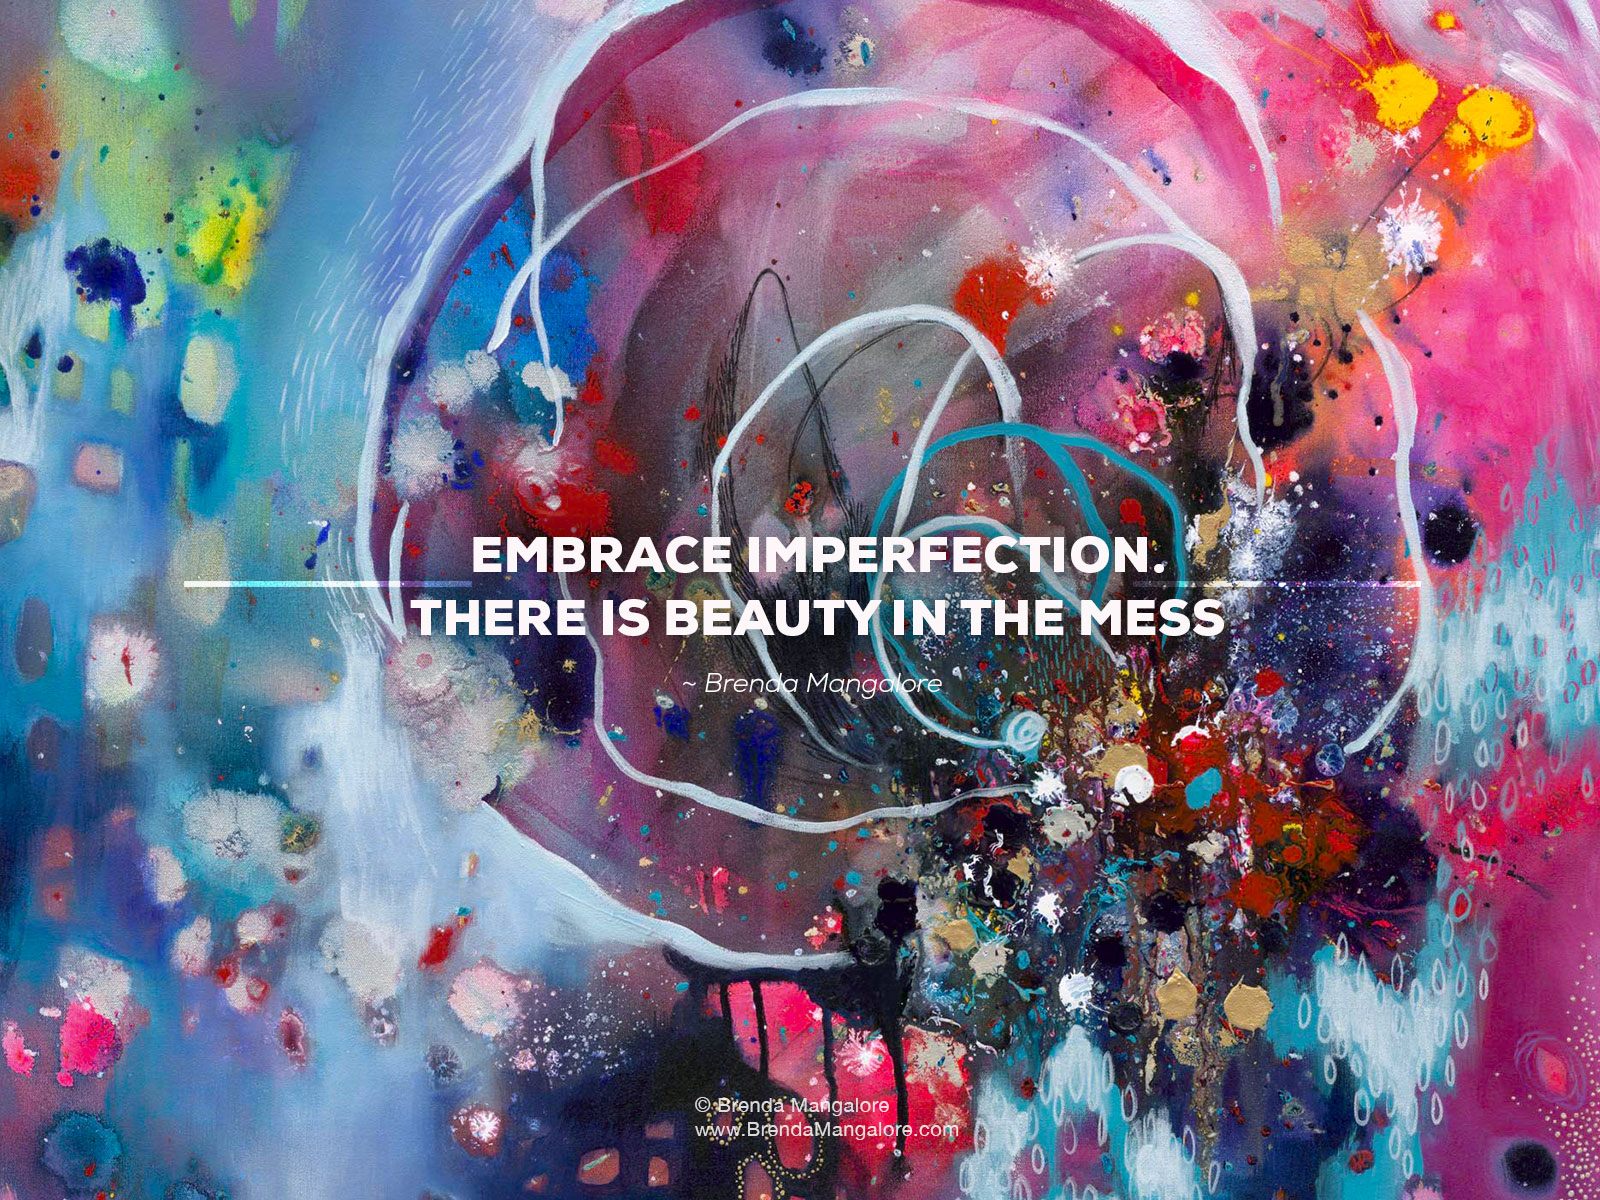 EMBRACEimperfection_1600x1200.jpg